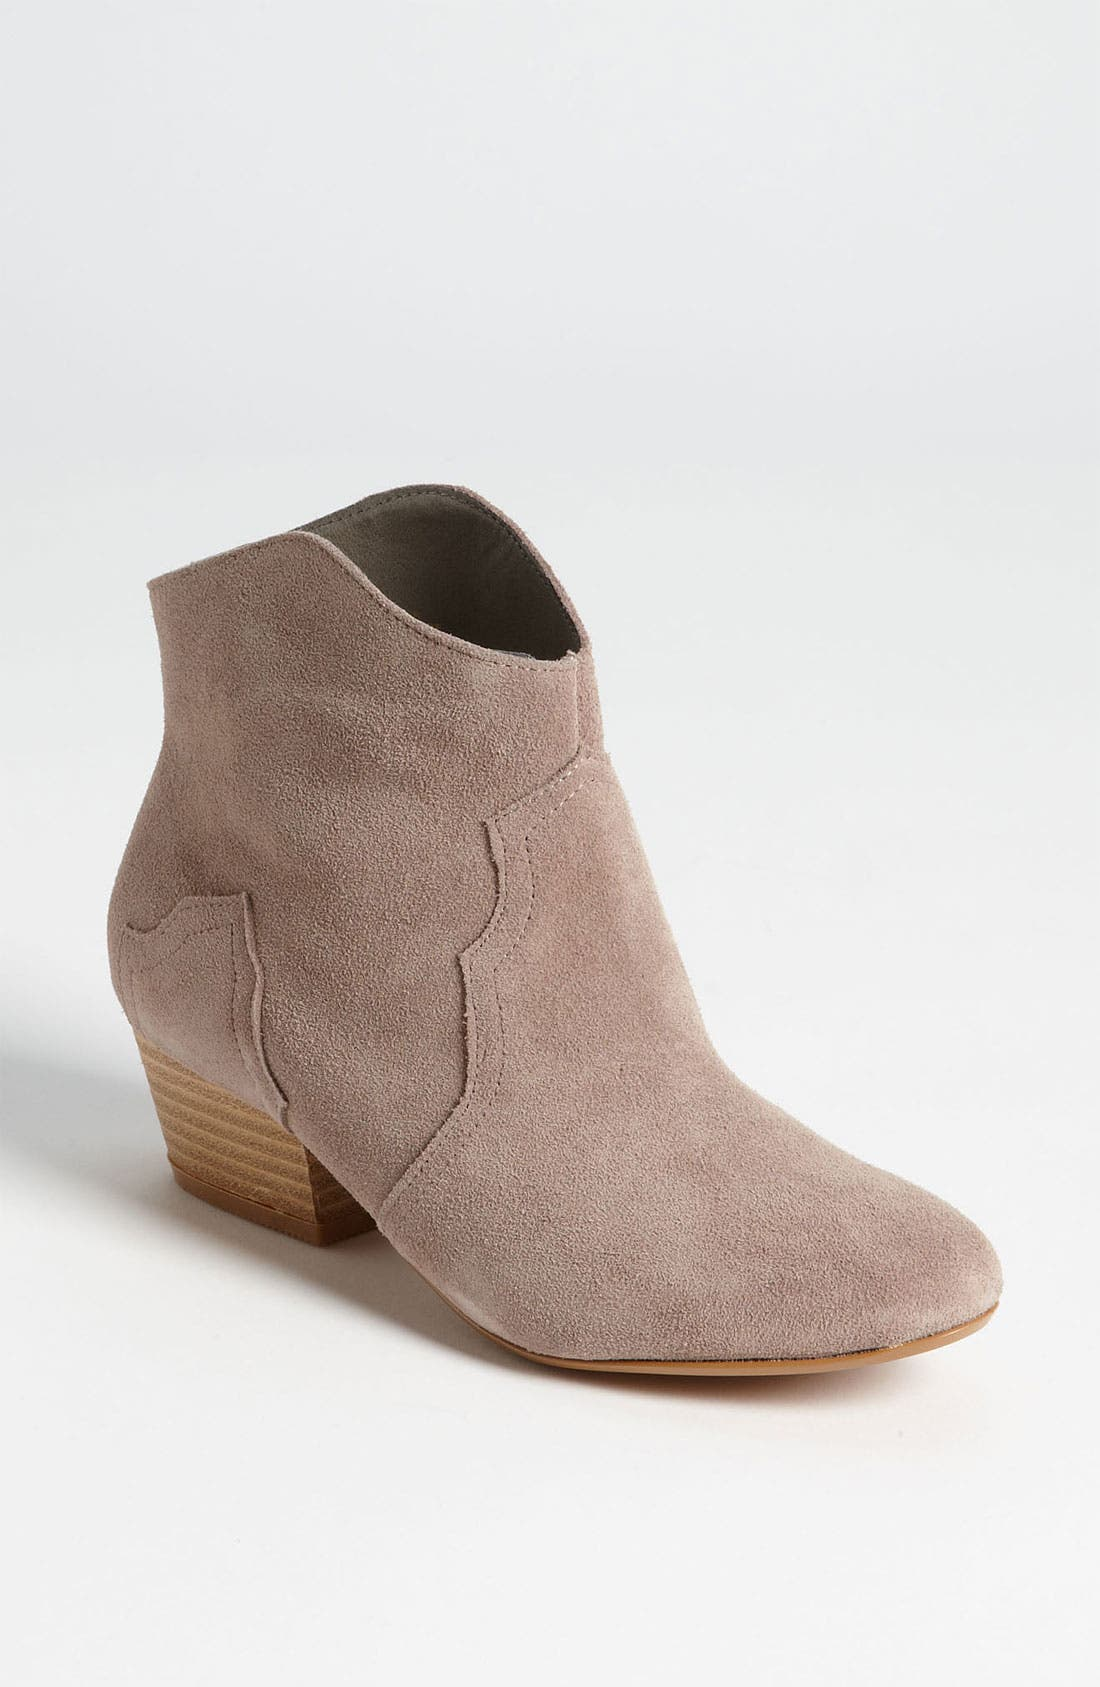 Alternate Image 1 Selected - Sole Society 'Elsa' Bootie  (Online Exclusive)